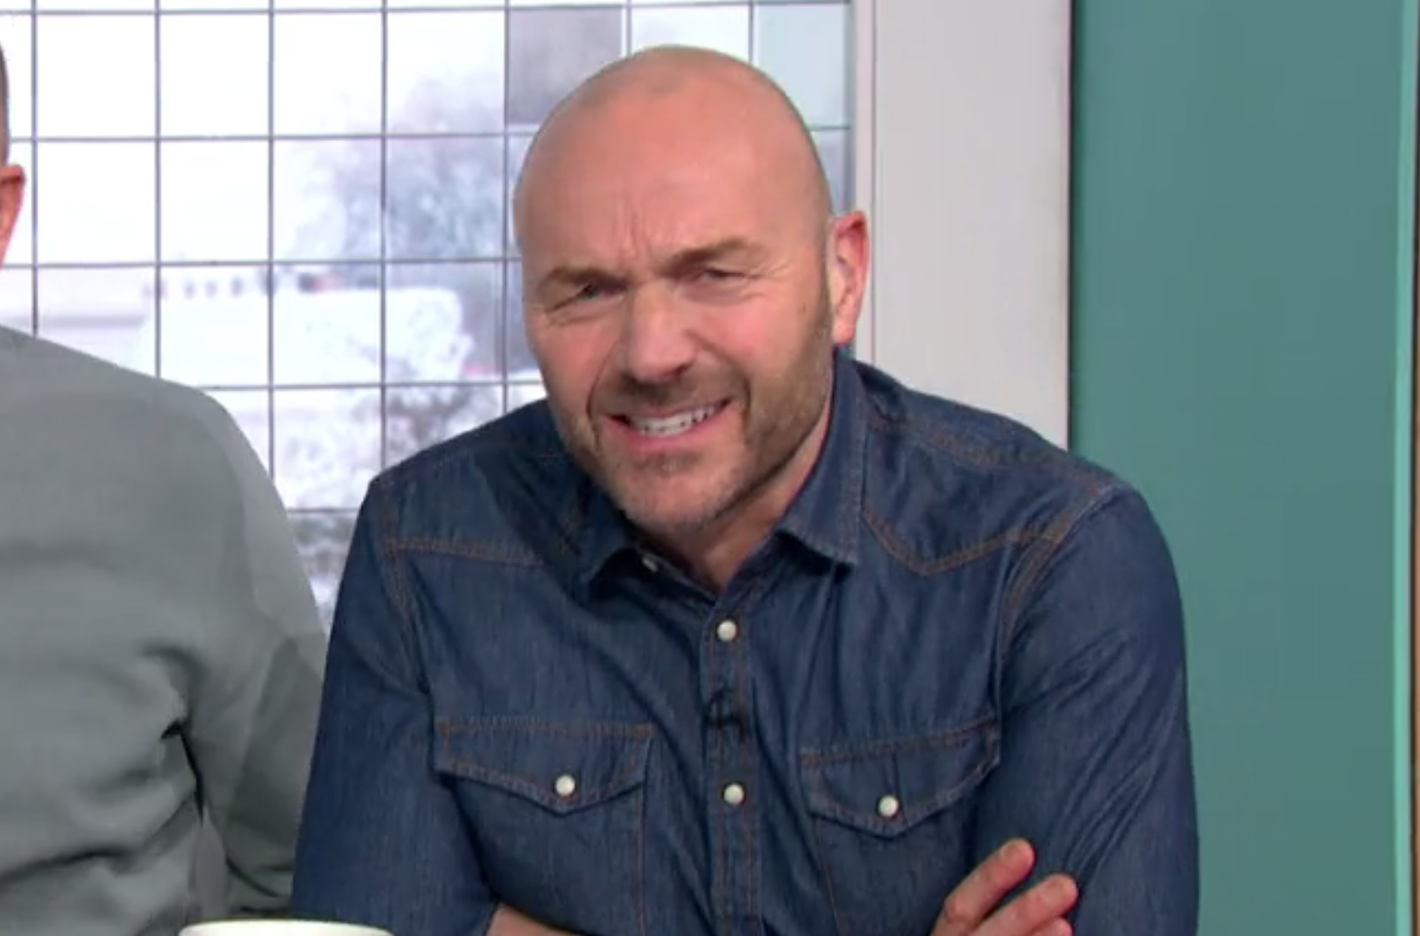 Simon Rimmer addresses Sunday Brunch fans worried about his health